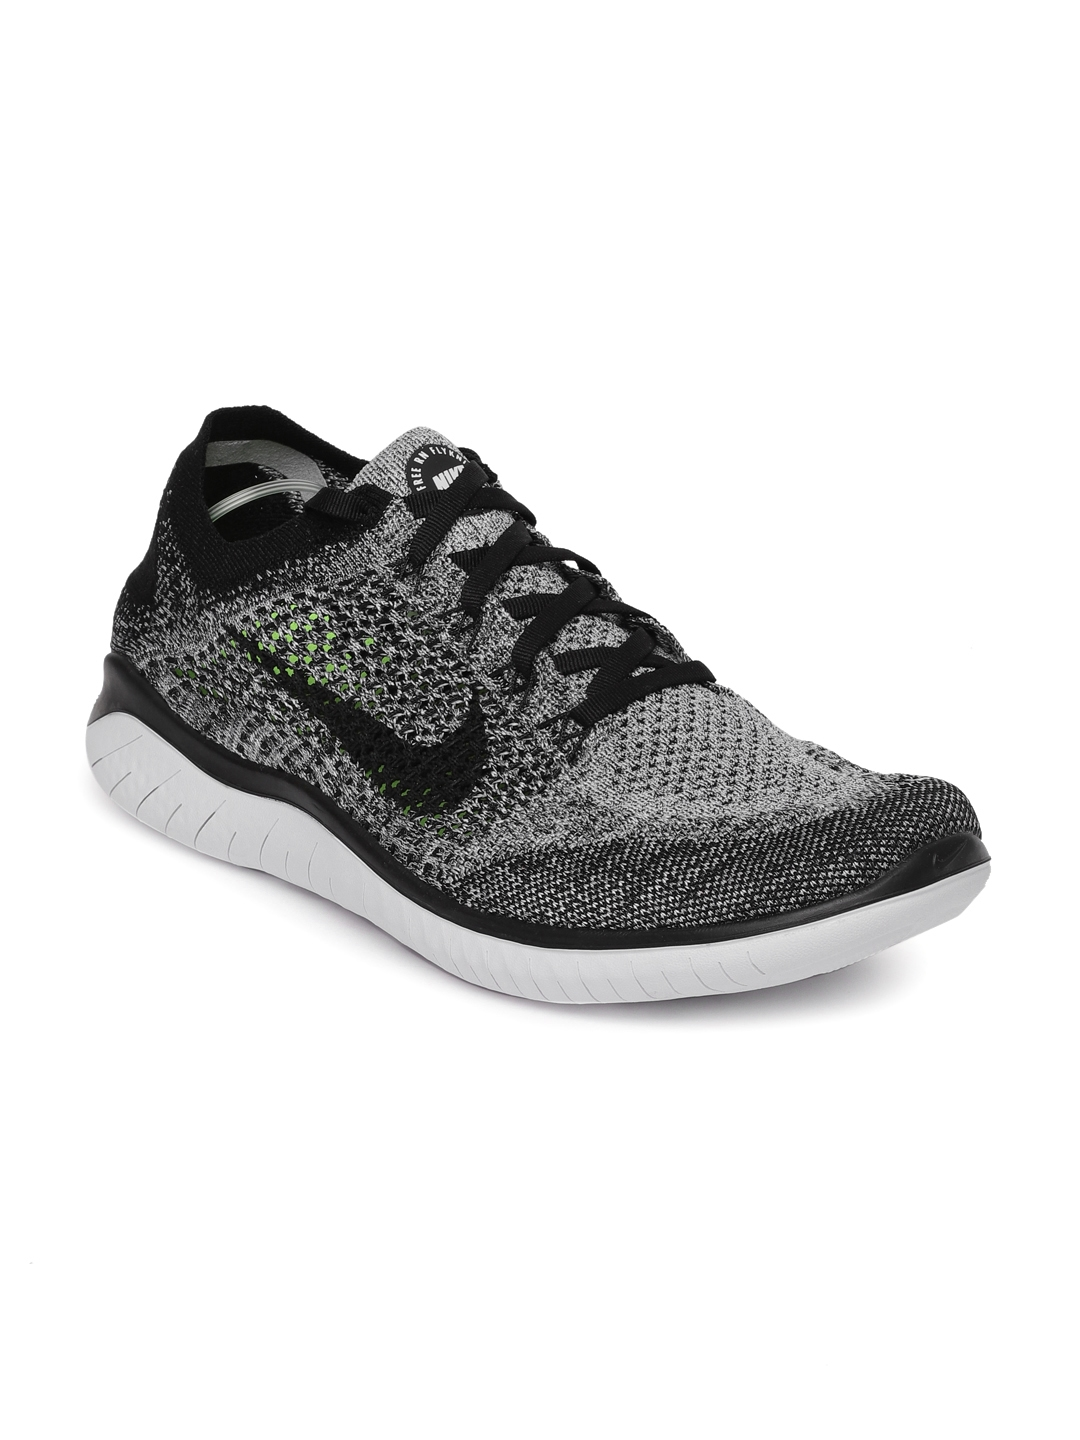 a468d21811d Buy Nike Men White   Black Free RN Flyknit 2018 Running Shoes ...